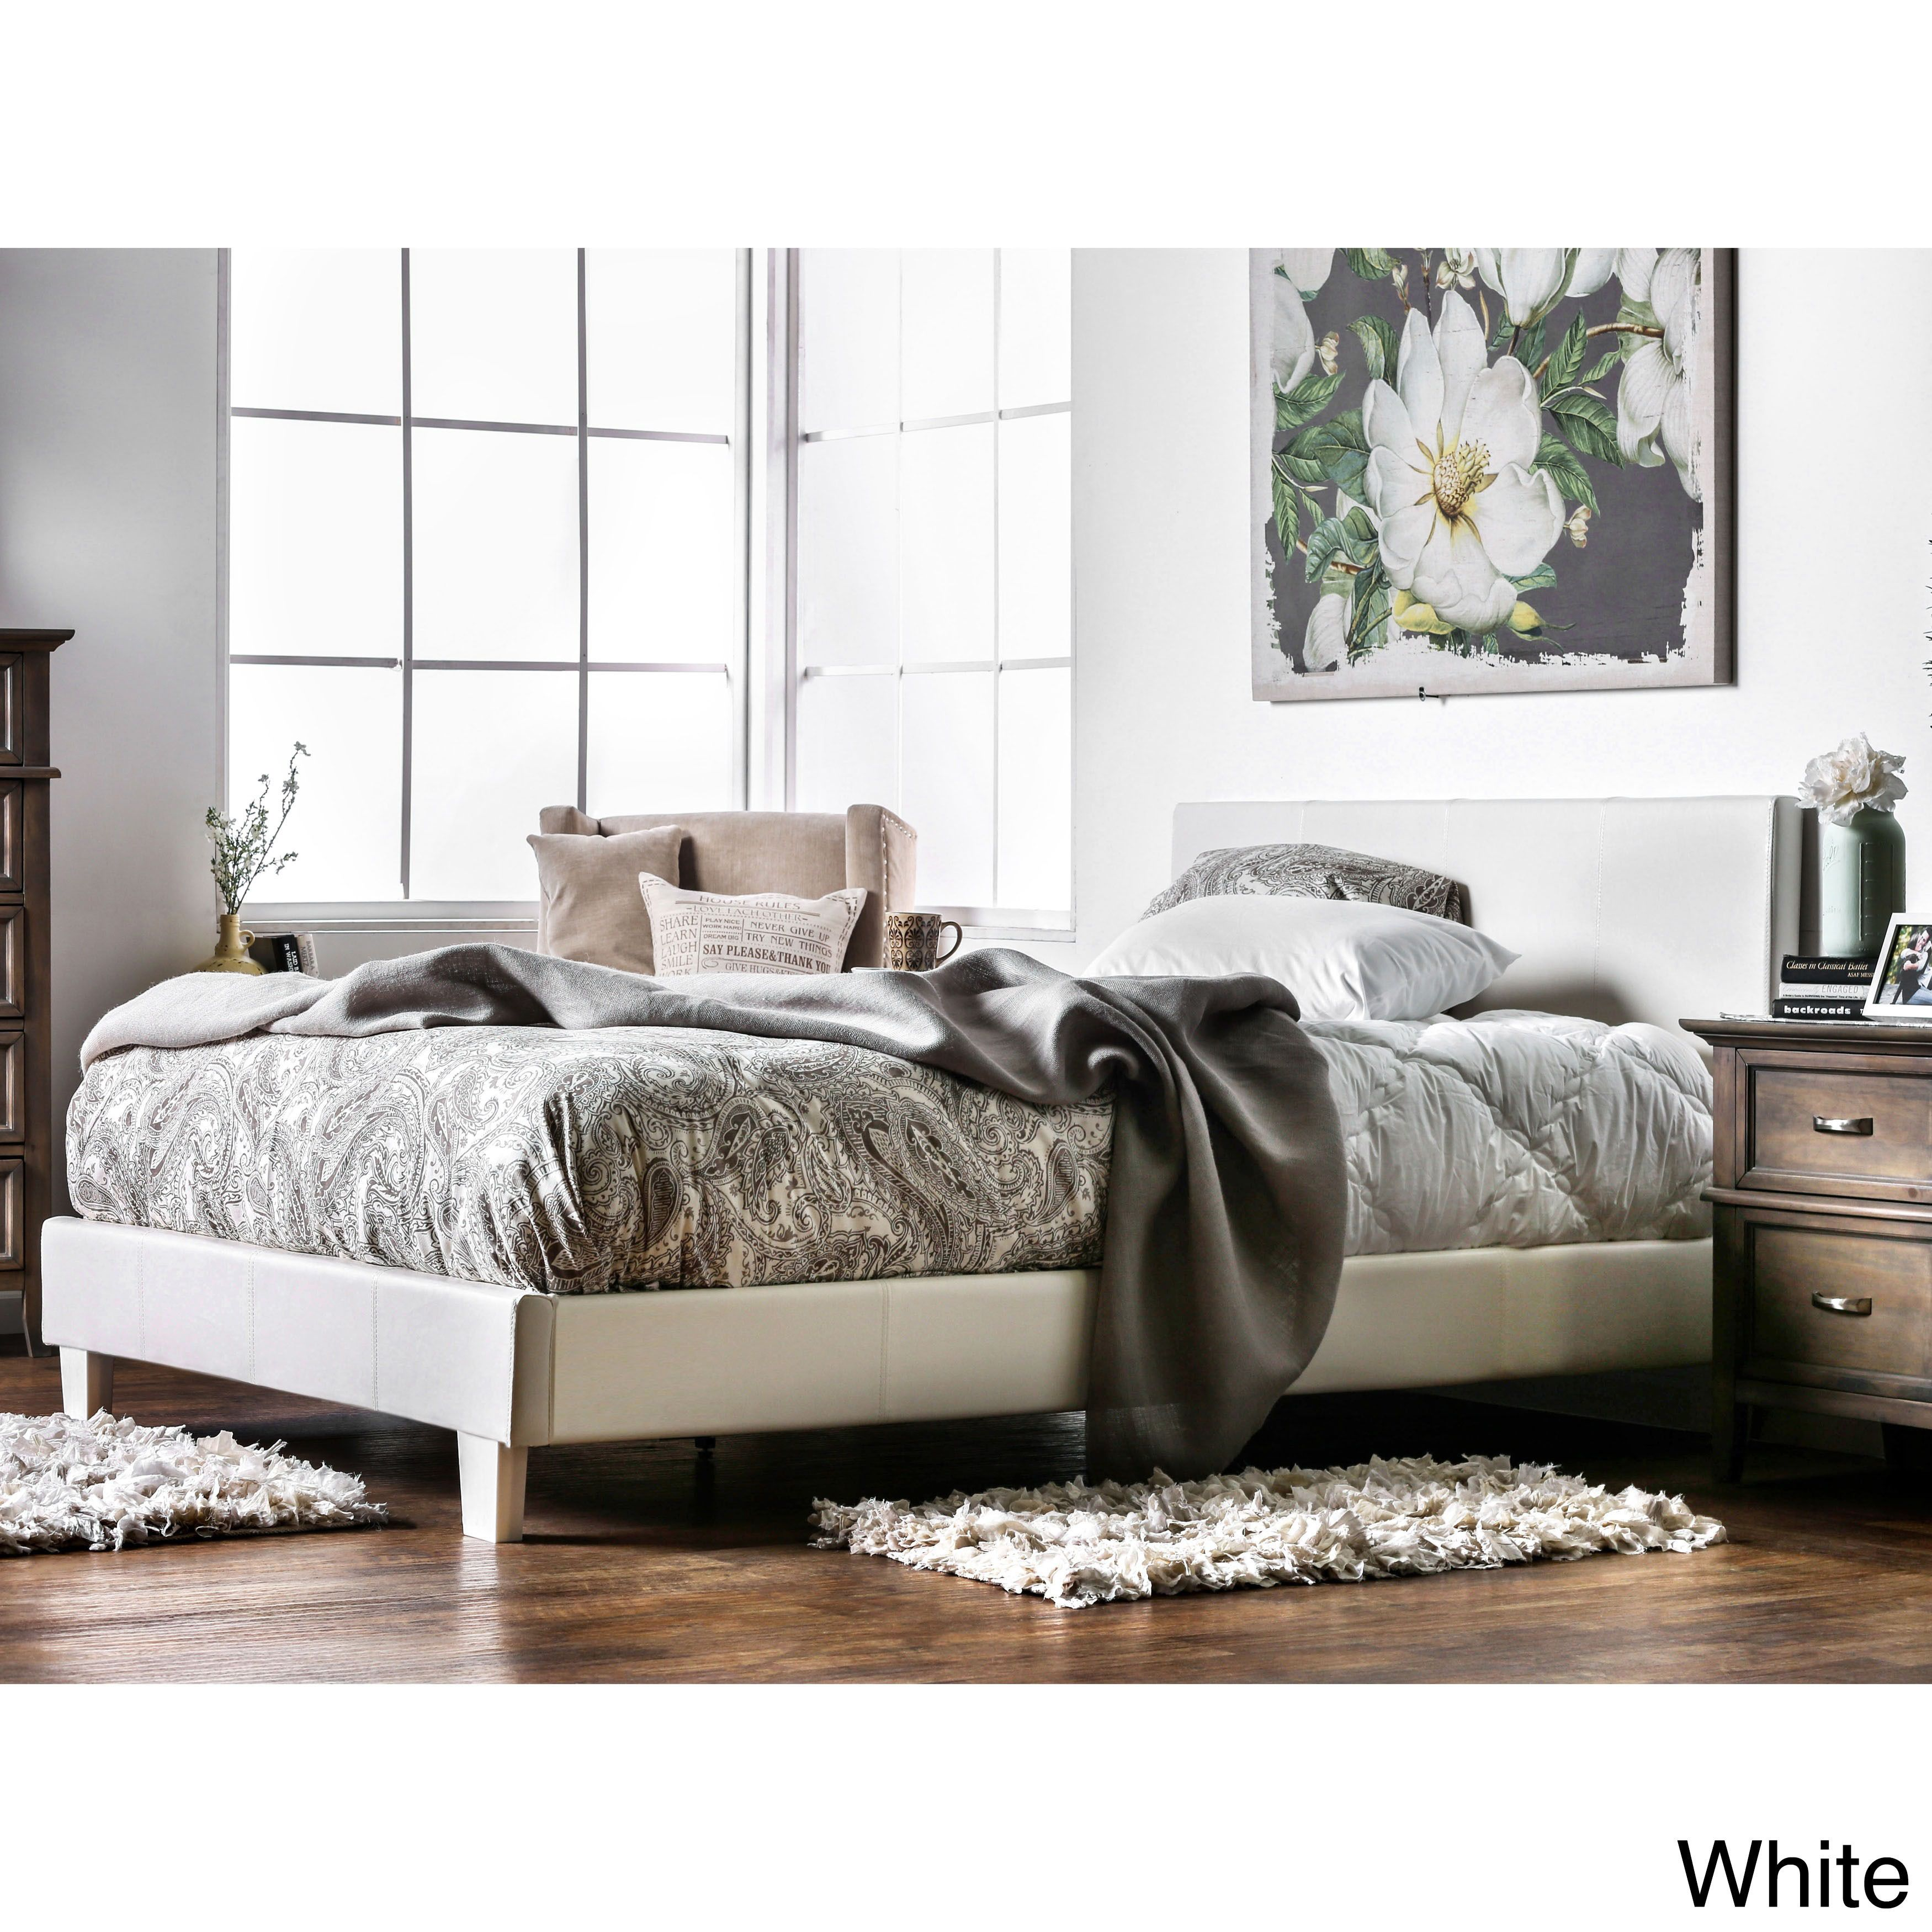 Elevate your bedroom decor with sophisticated style when you add this platform bed to your collection. This leatherette or fabric upholstered bed is made with an expertly crafted solid wood frame that